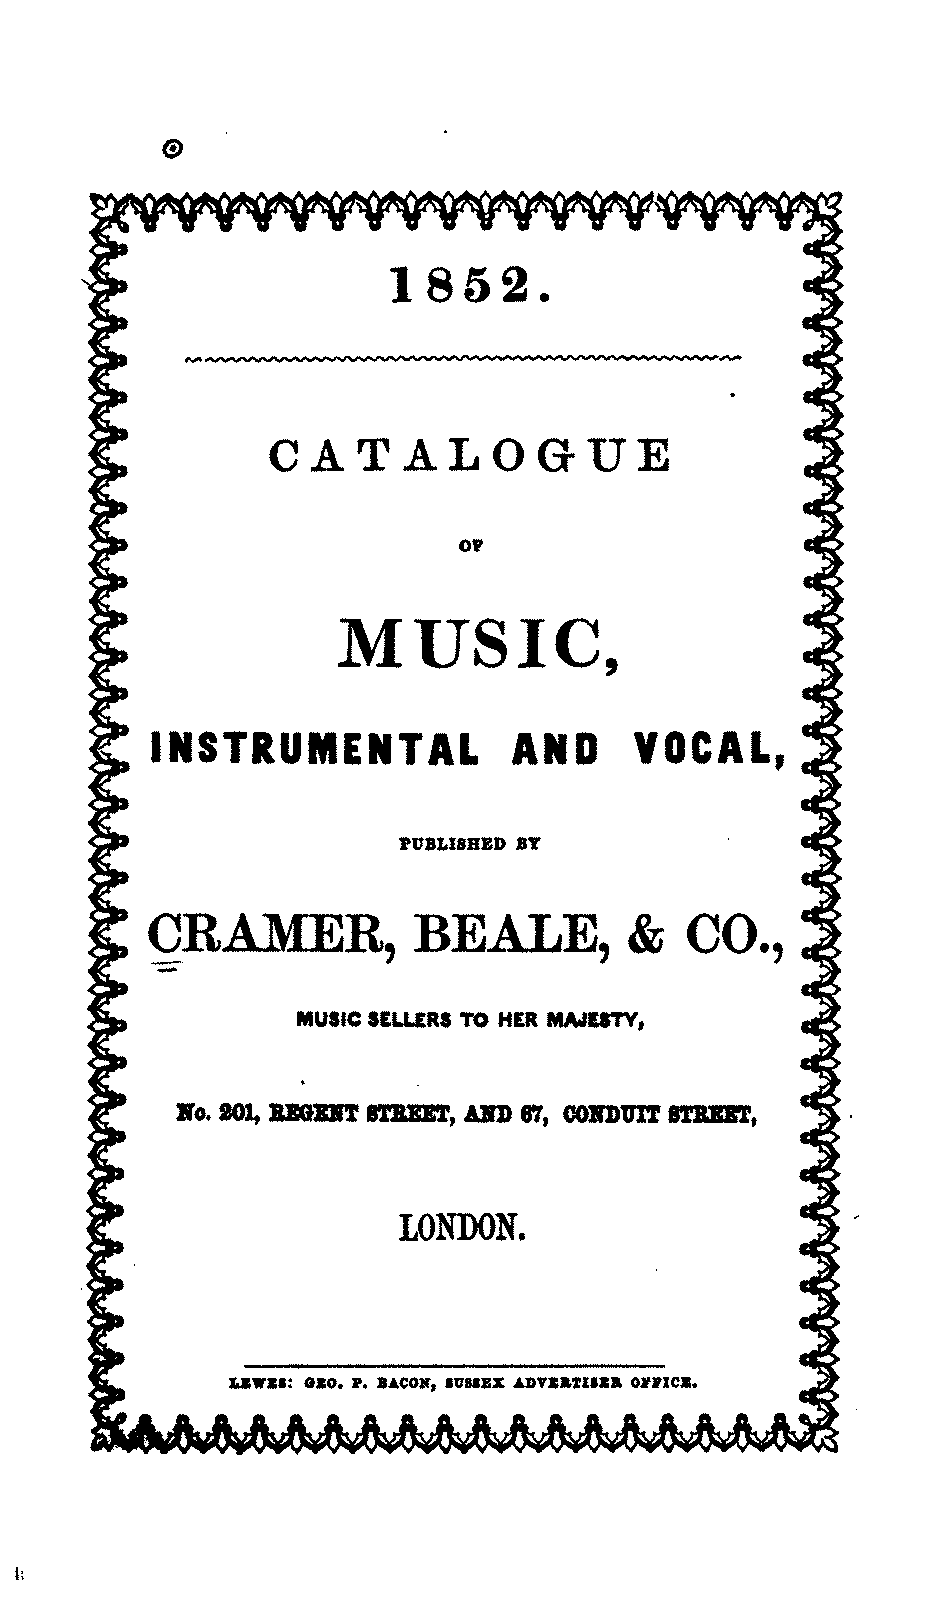 PMLP198832-Catalogue of Music Cramer, Beale and Co. 1851.pdf